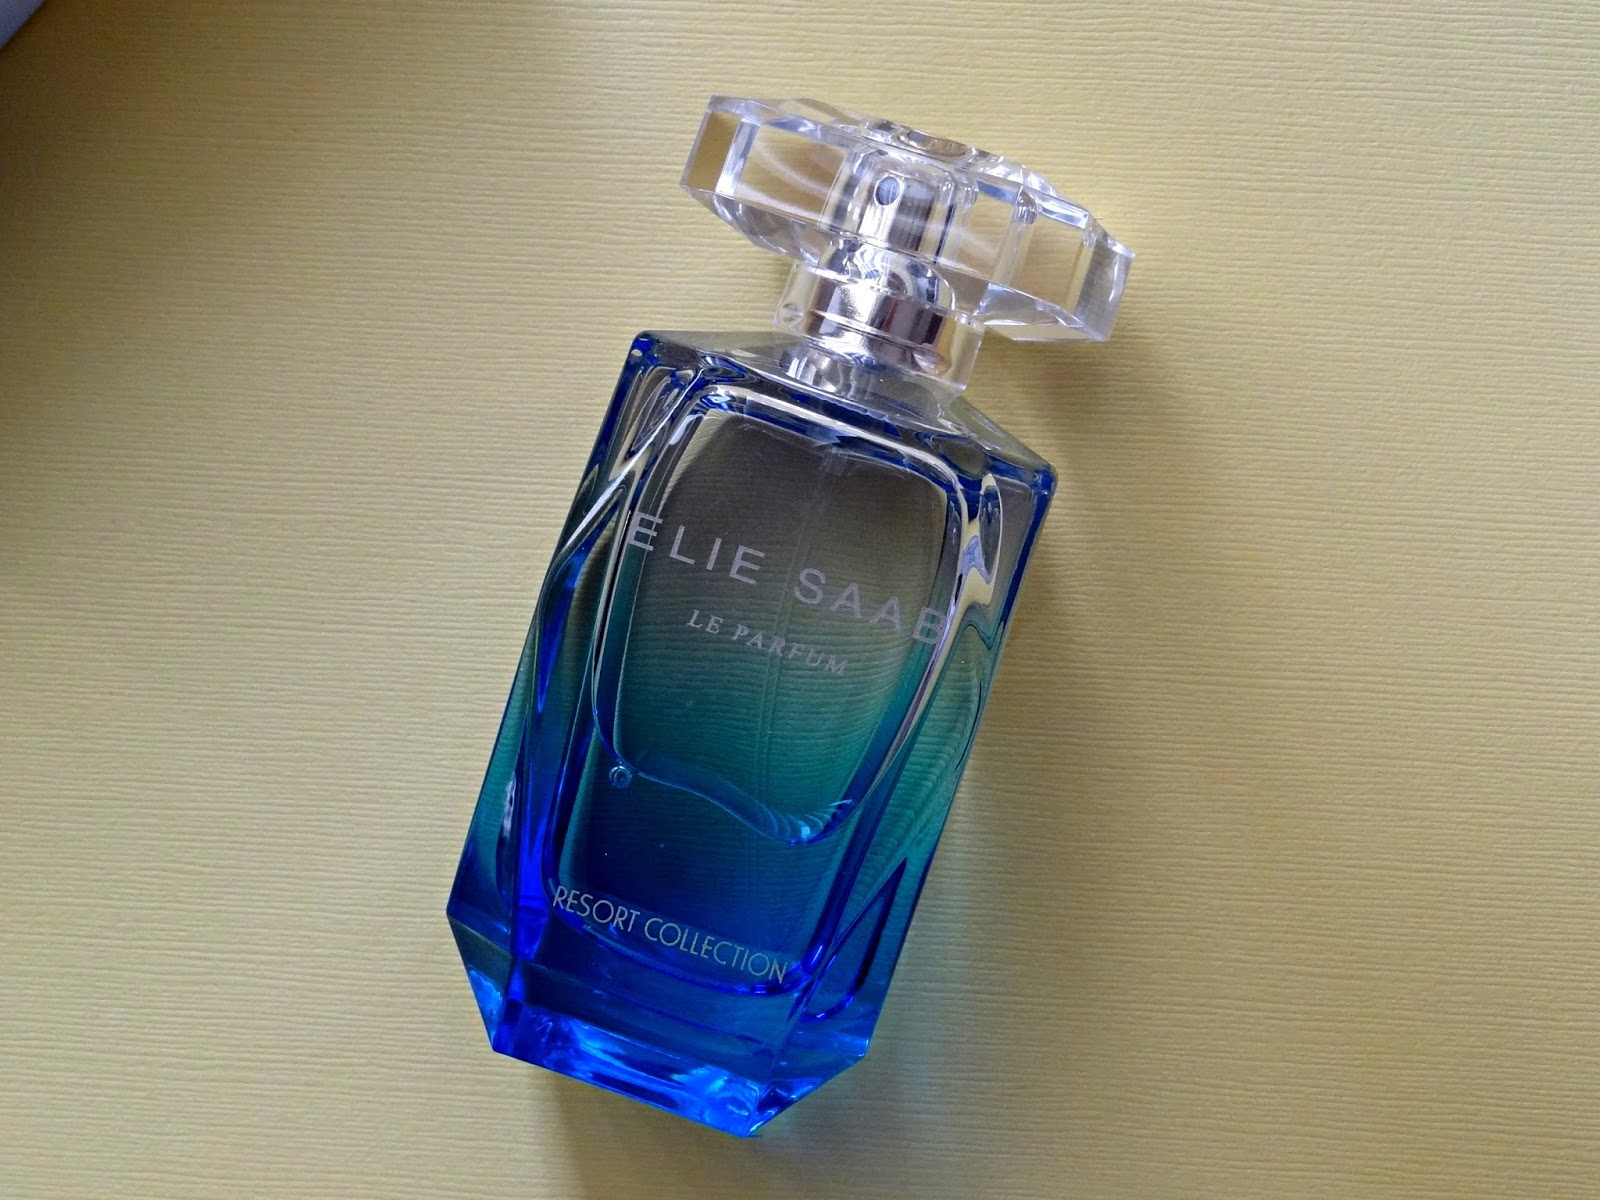 Elie Saab Le Parfum Resort Collection Eau de Toilette